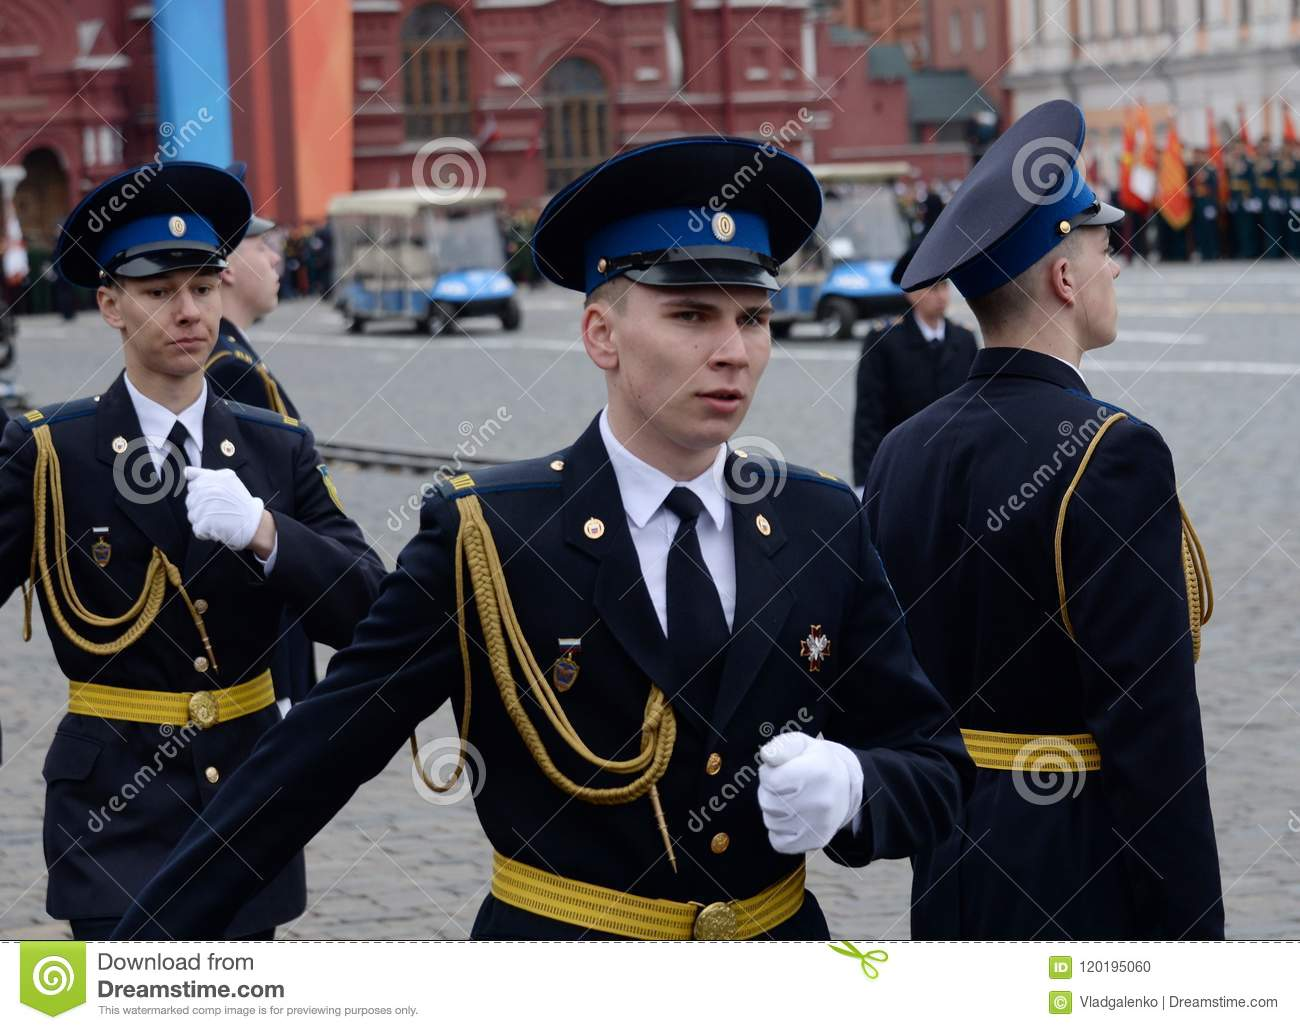 060a6382dcb Soldiers of the presidential regiment at the rehearsal of the military  parade on red square in Moscow.